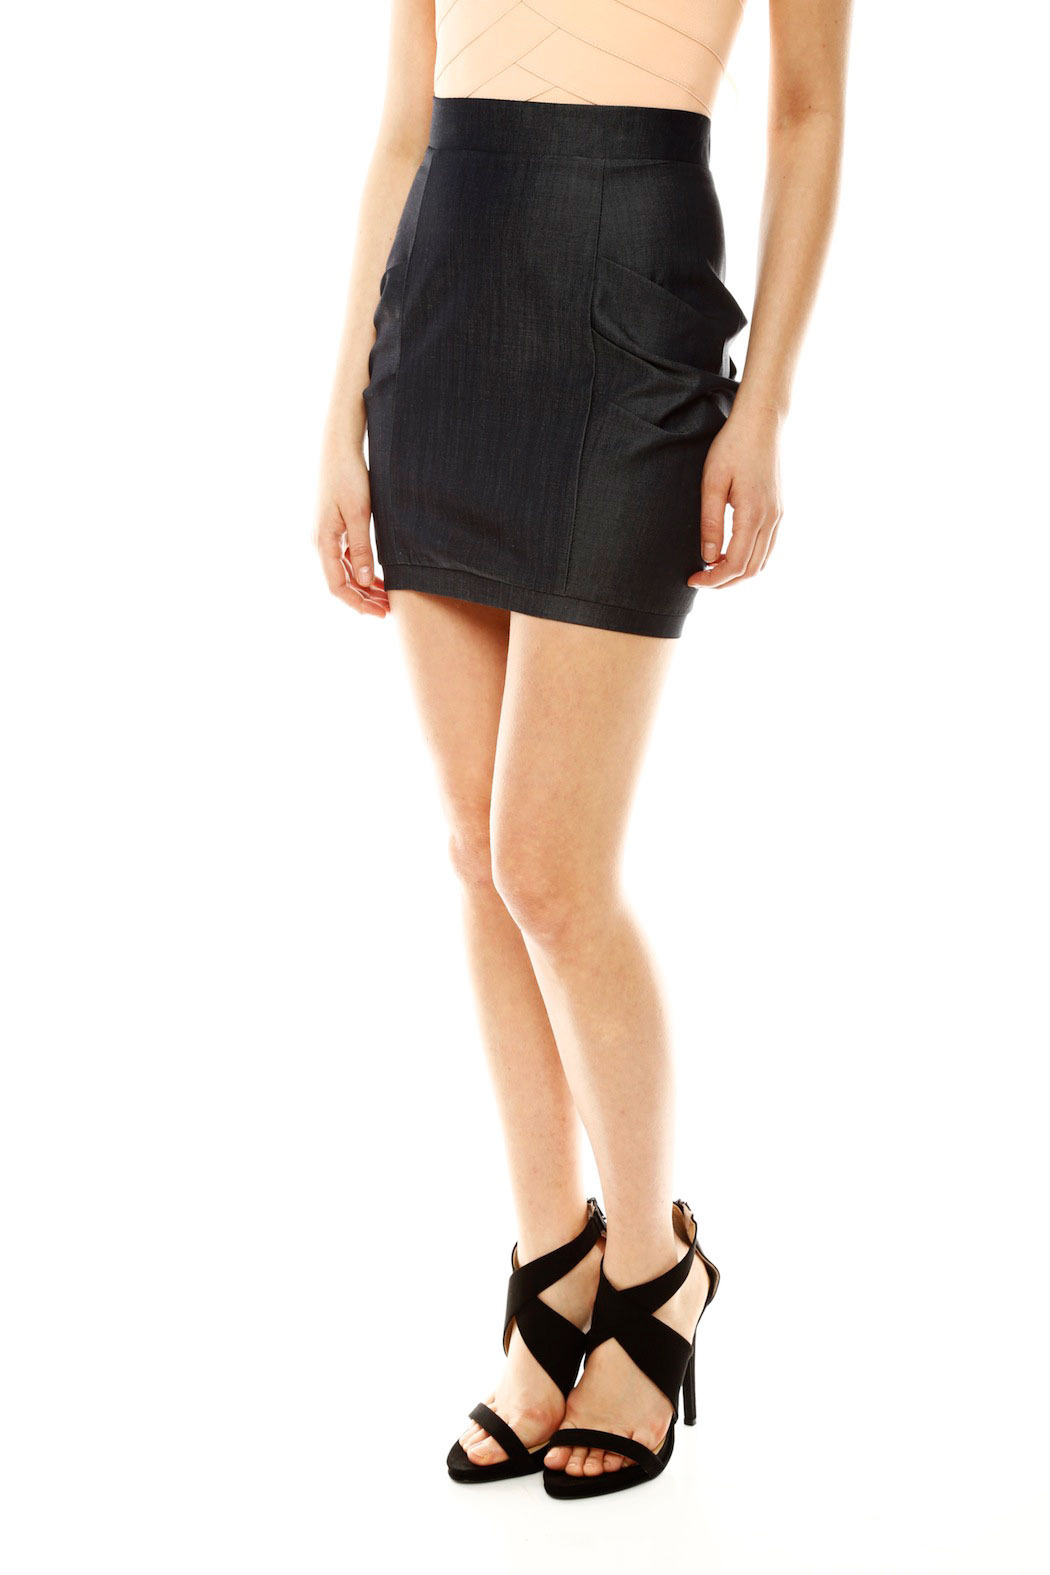 jhaus stretch denim skirt from by clothes minded